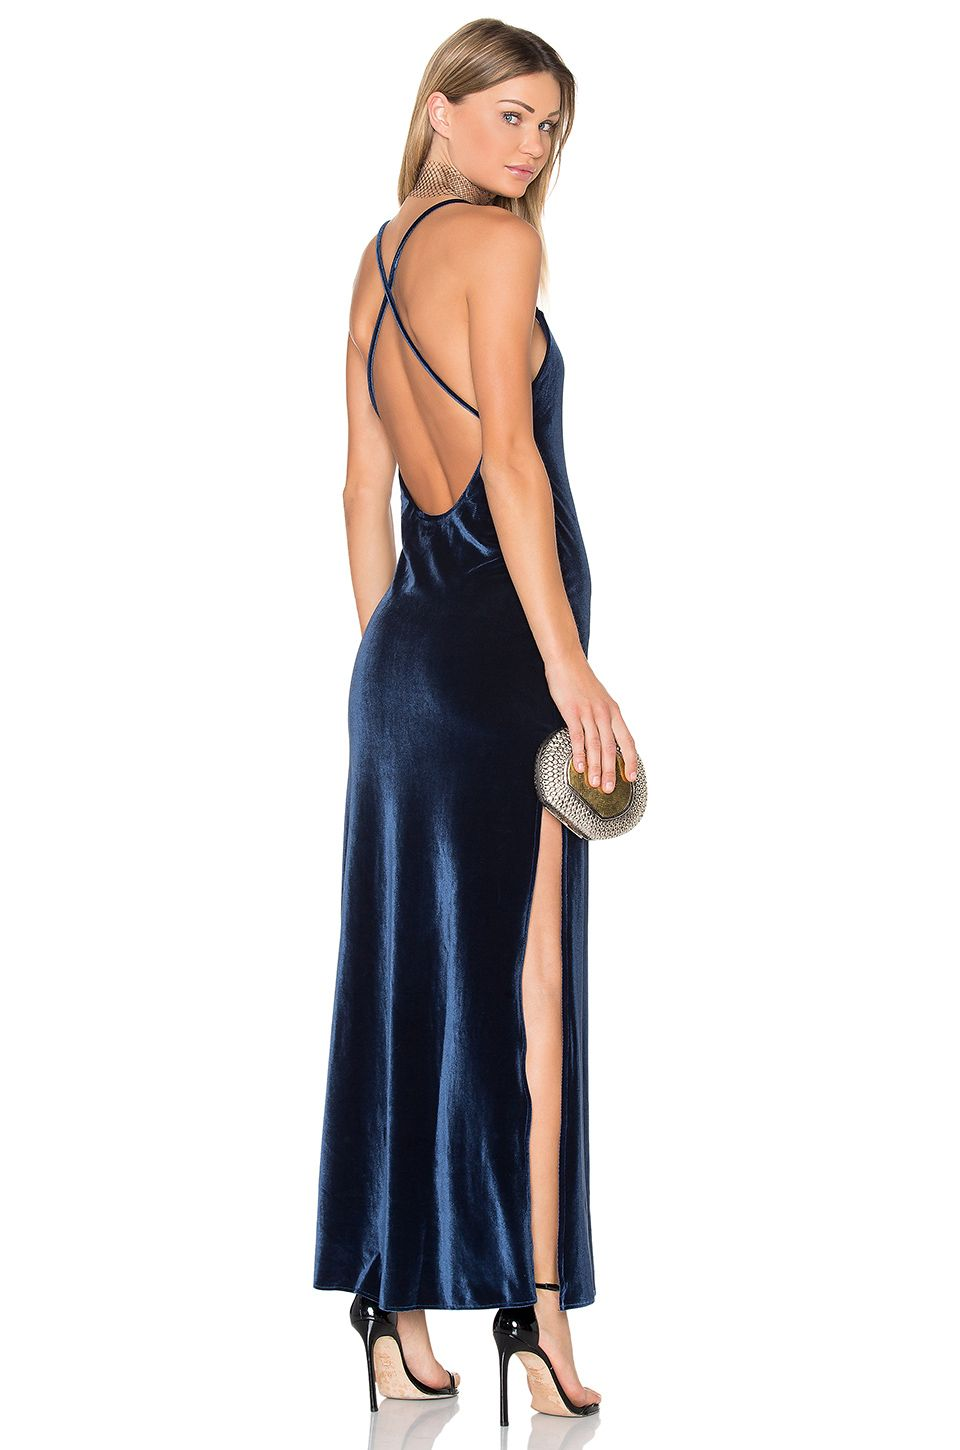 ac7a1945e88 NBD x REVOLVE In The Deep Maxi Dress in Navy